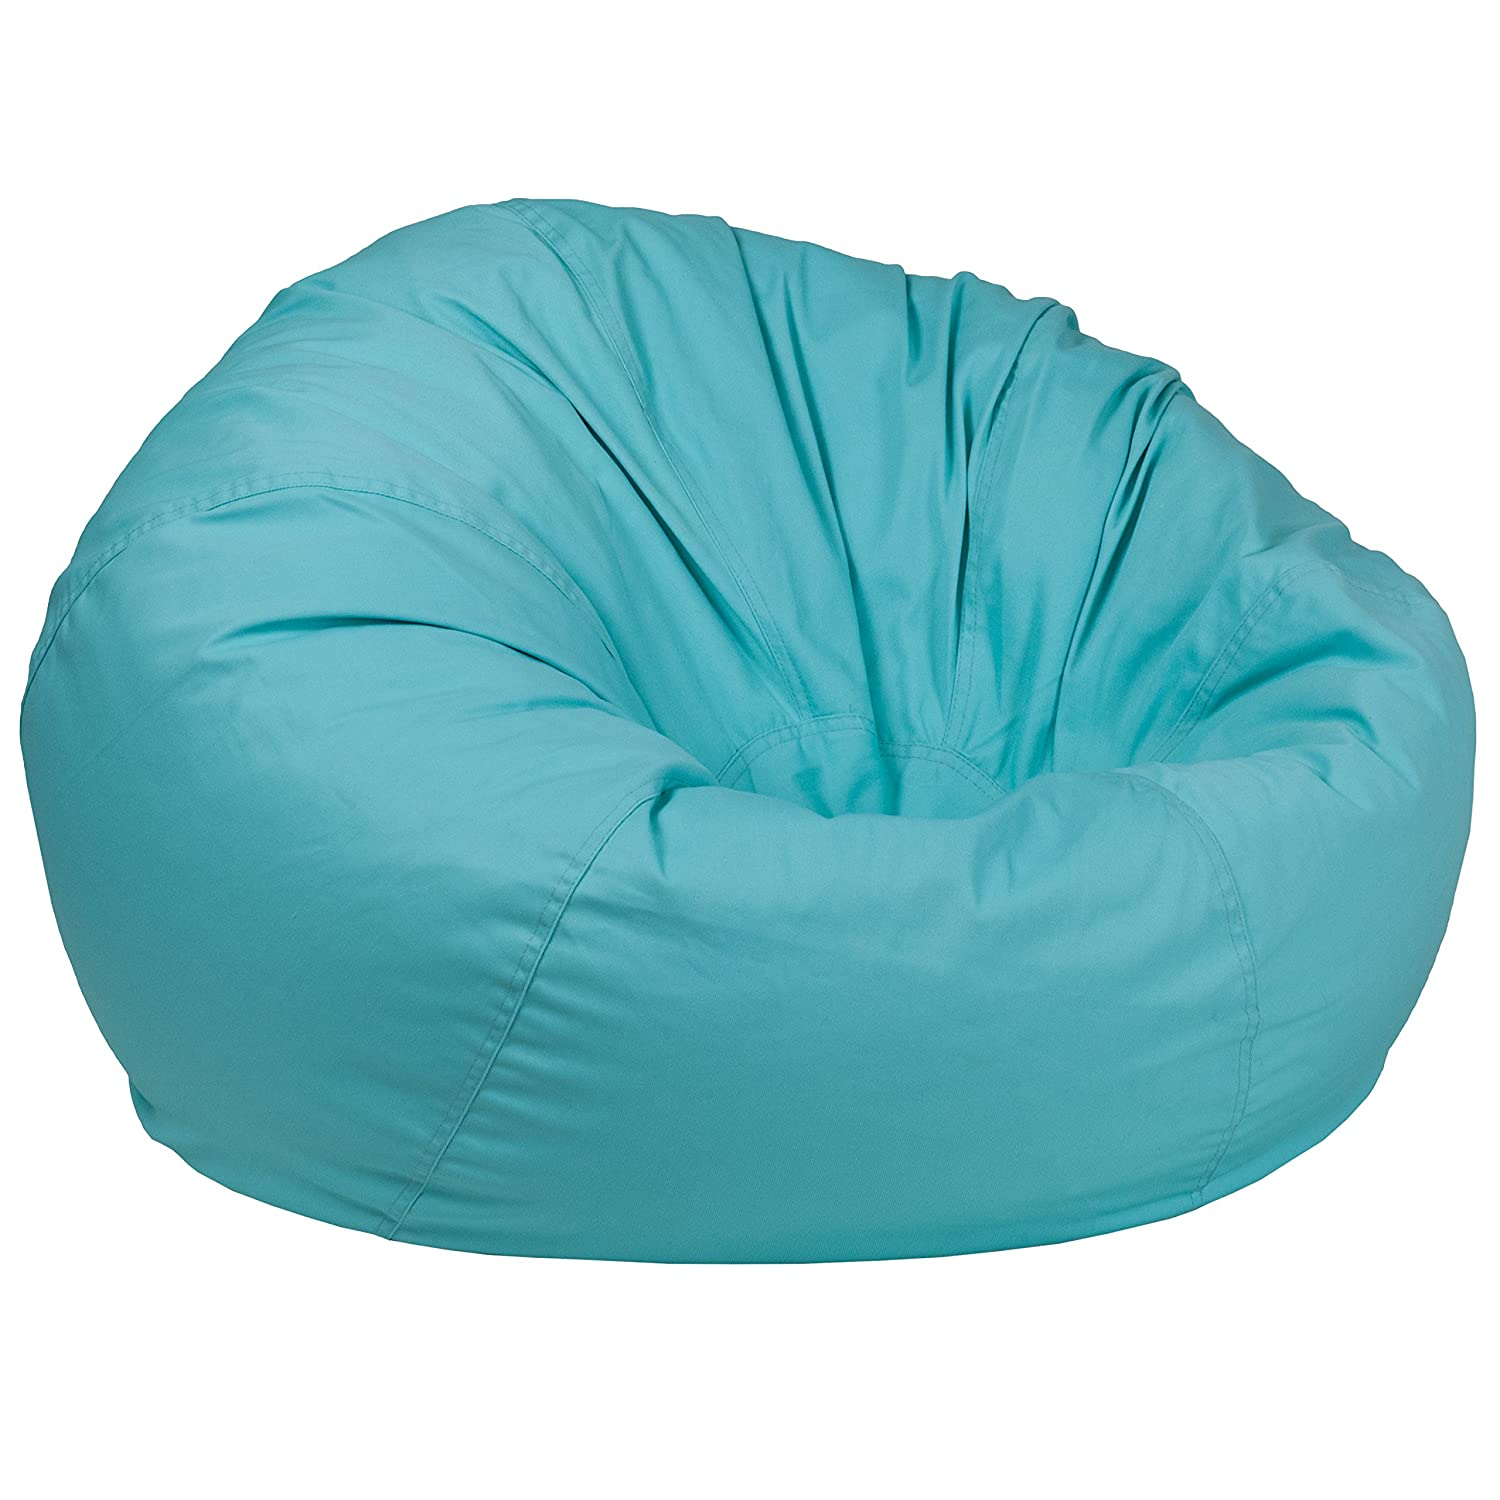 Awesome Flash Furniture Oversized Solid Mint Green Bean Bag Chair Andrewgaddart Wooden Chair Designs For Living Room Andrewgaddartcom